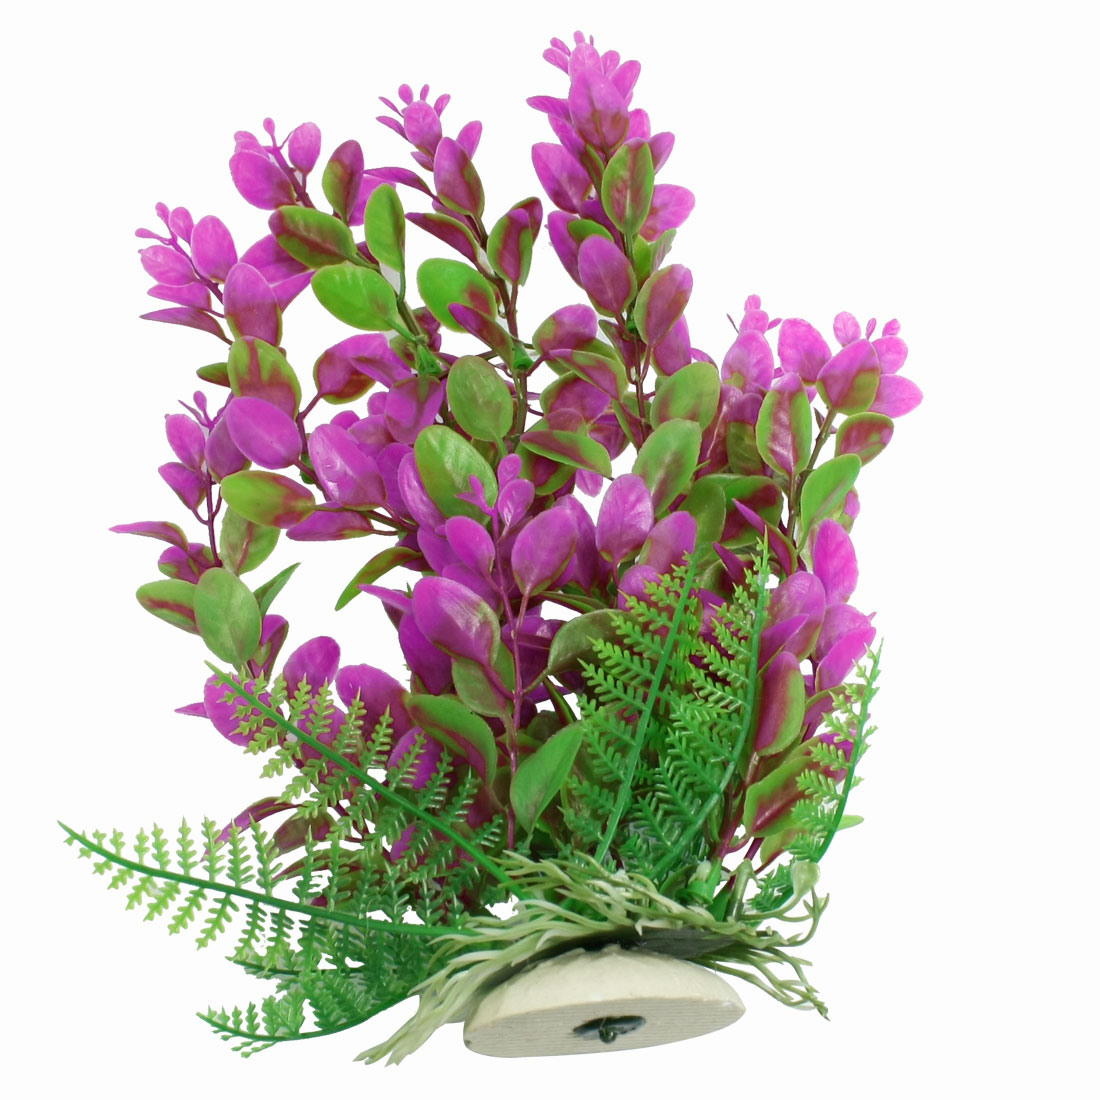 Fish Aquarium Fuchsia Green Plastic Plant Landscaping Decoration 9.8""